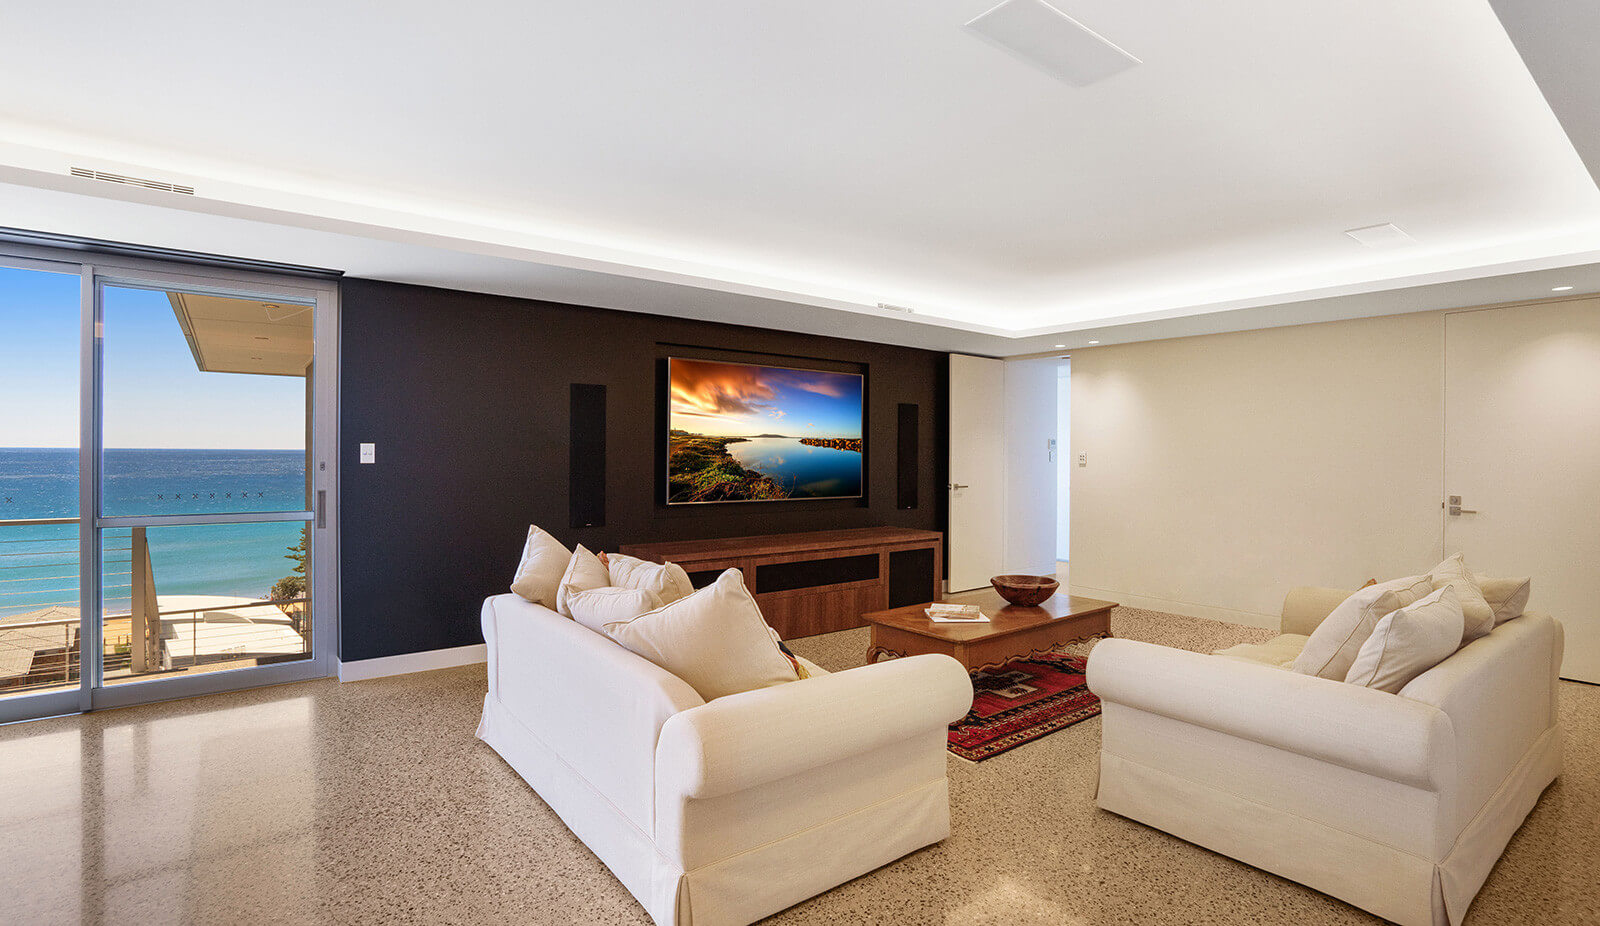 Lounge room with in-wall TV